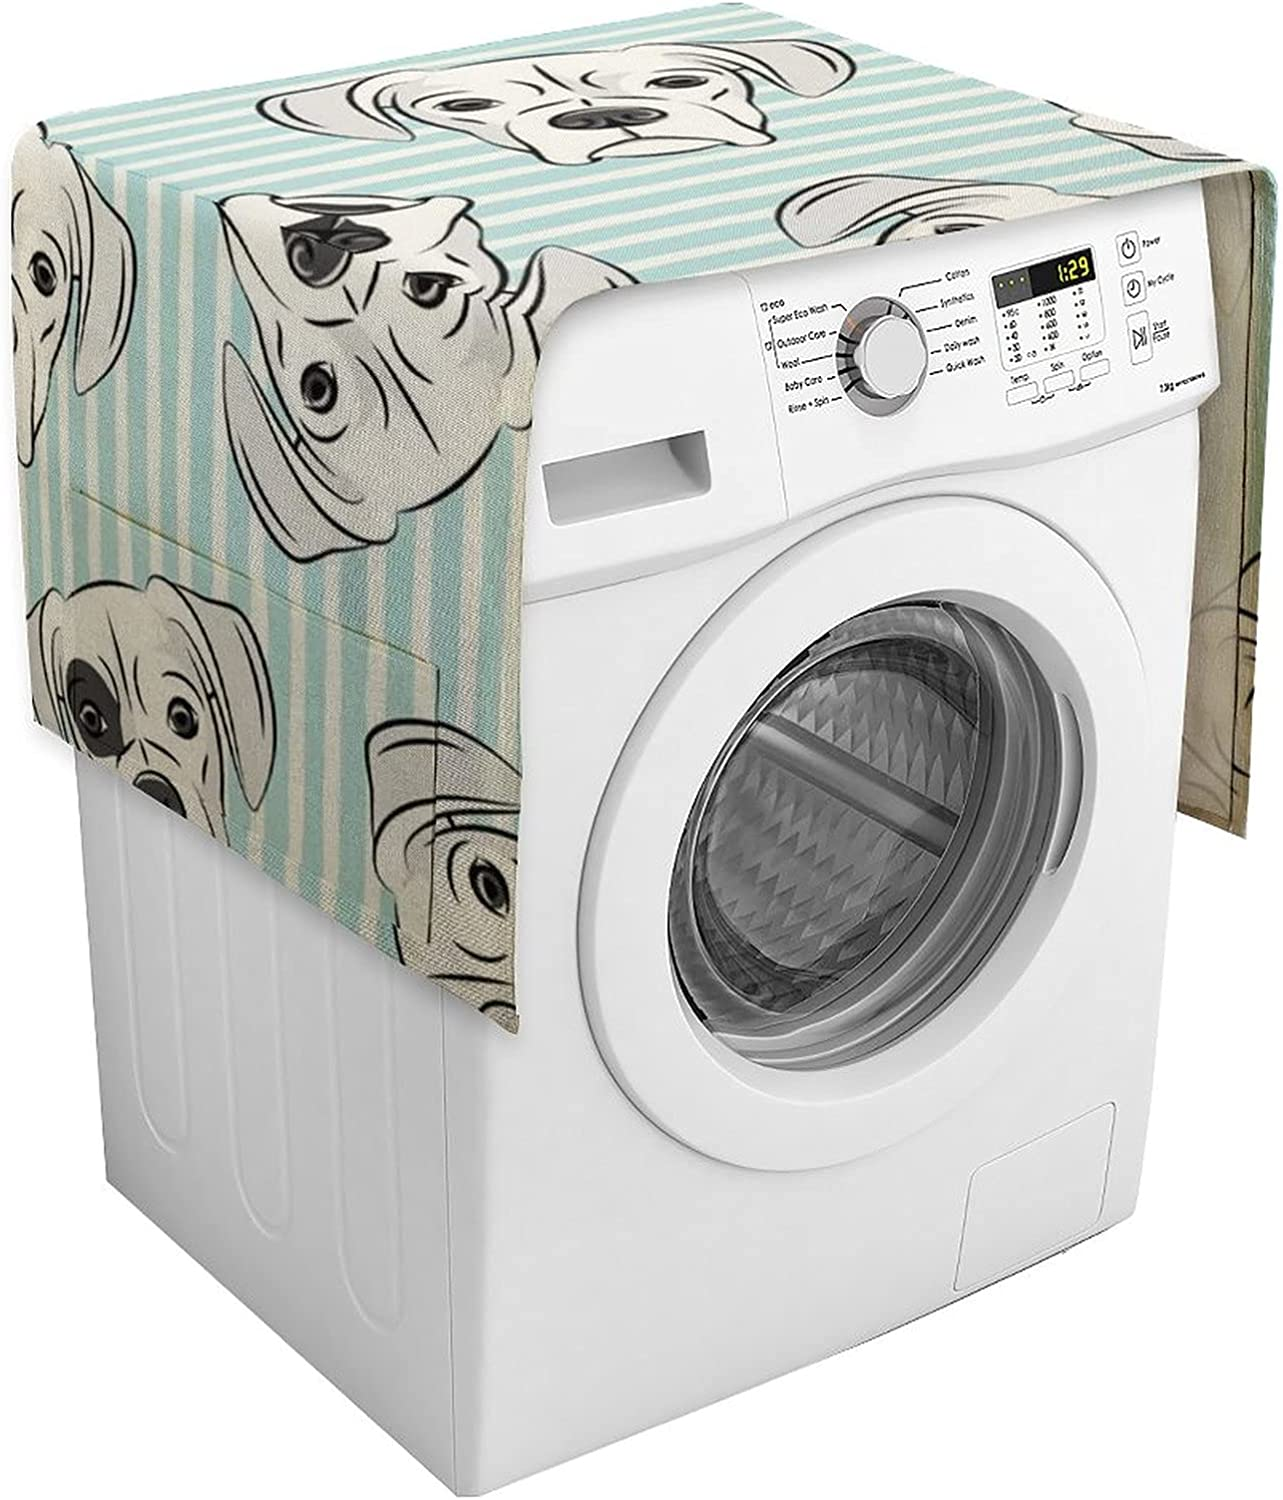 Max 90% OFF Multi-Purpose Sales Washing Machine Covers Washer Appliance Protector